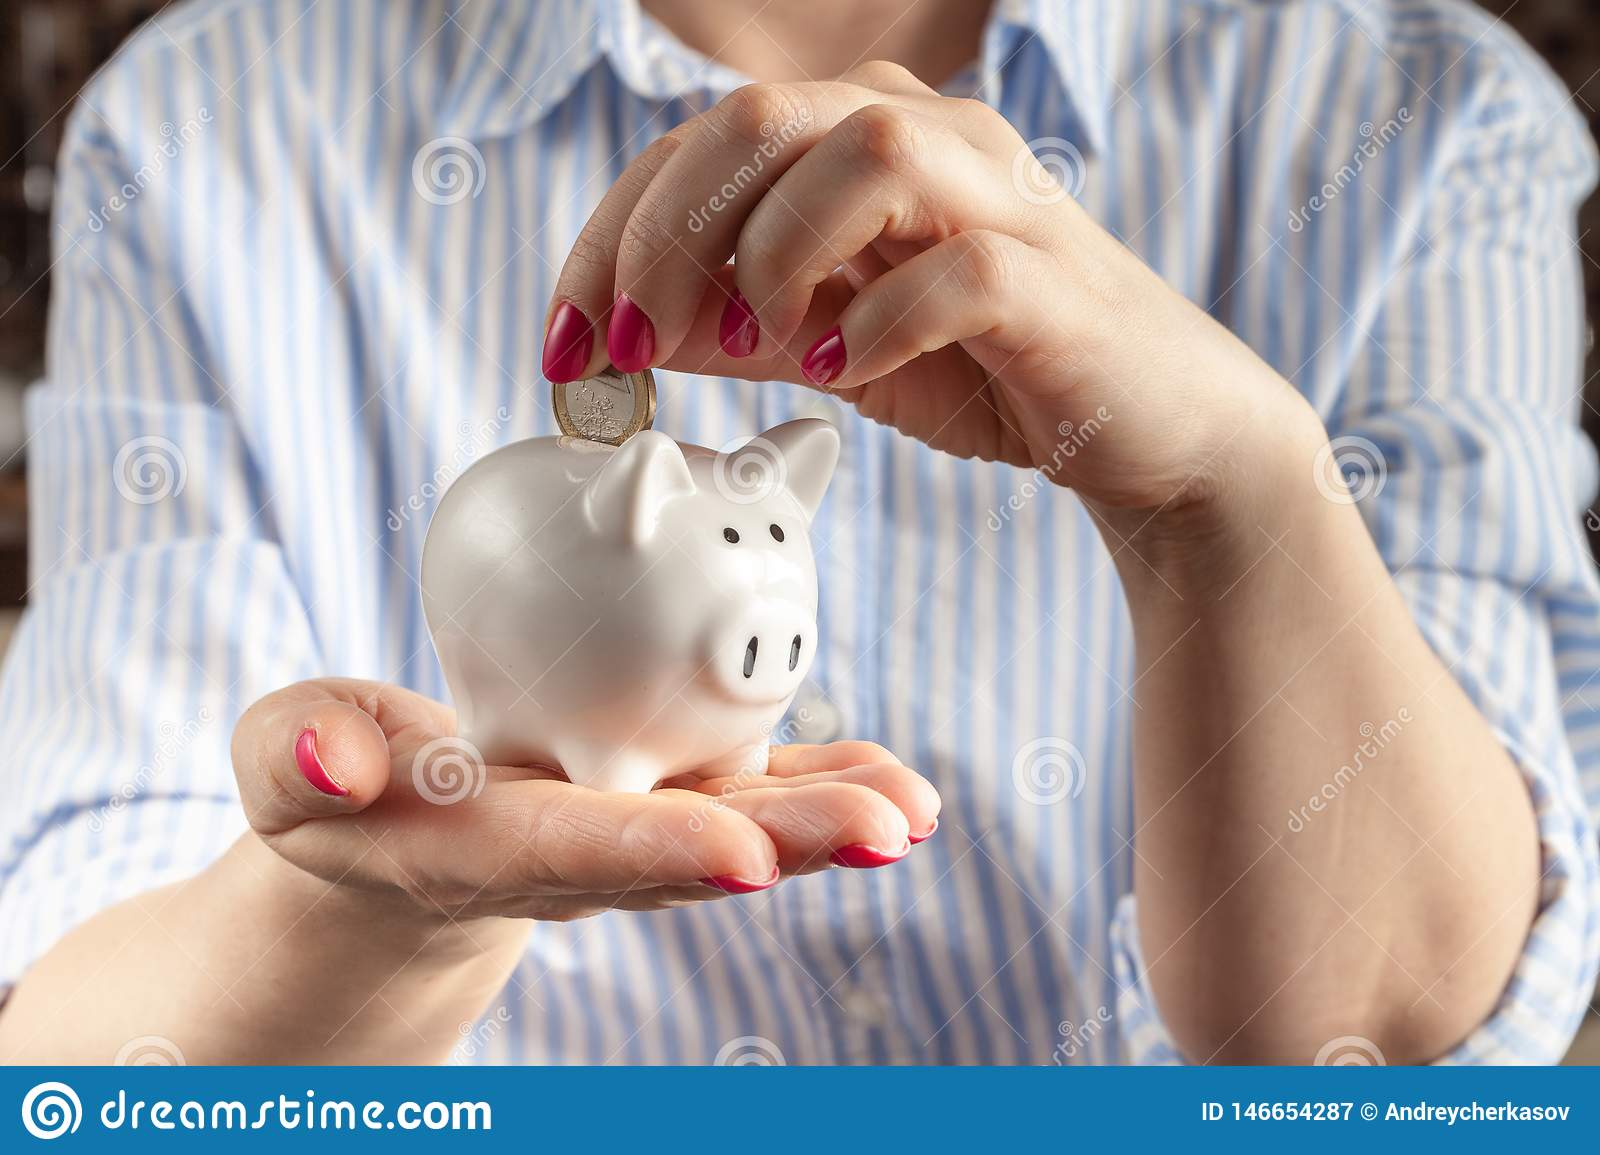 Savings concept,white piggy bank with human female hand inserting coin inside